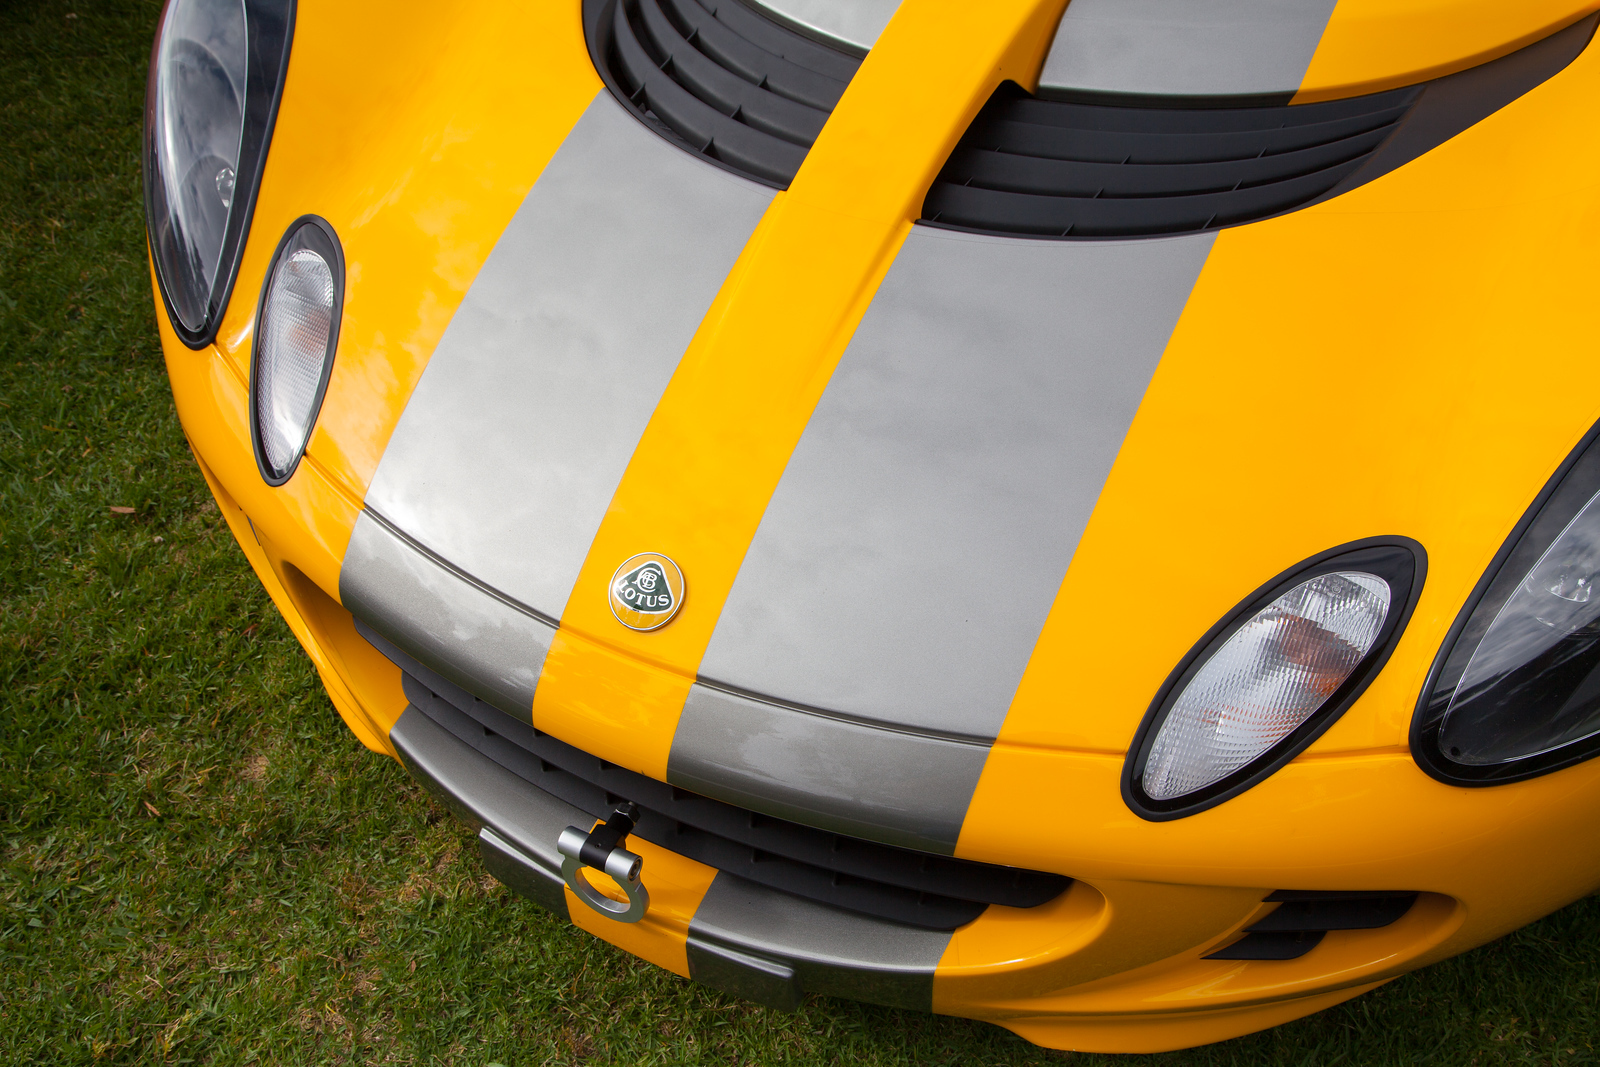 2006 Lotus Sport Elise, owned by Jim Bindman